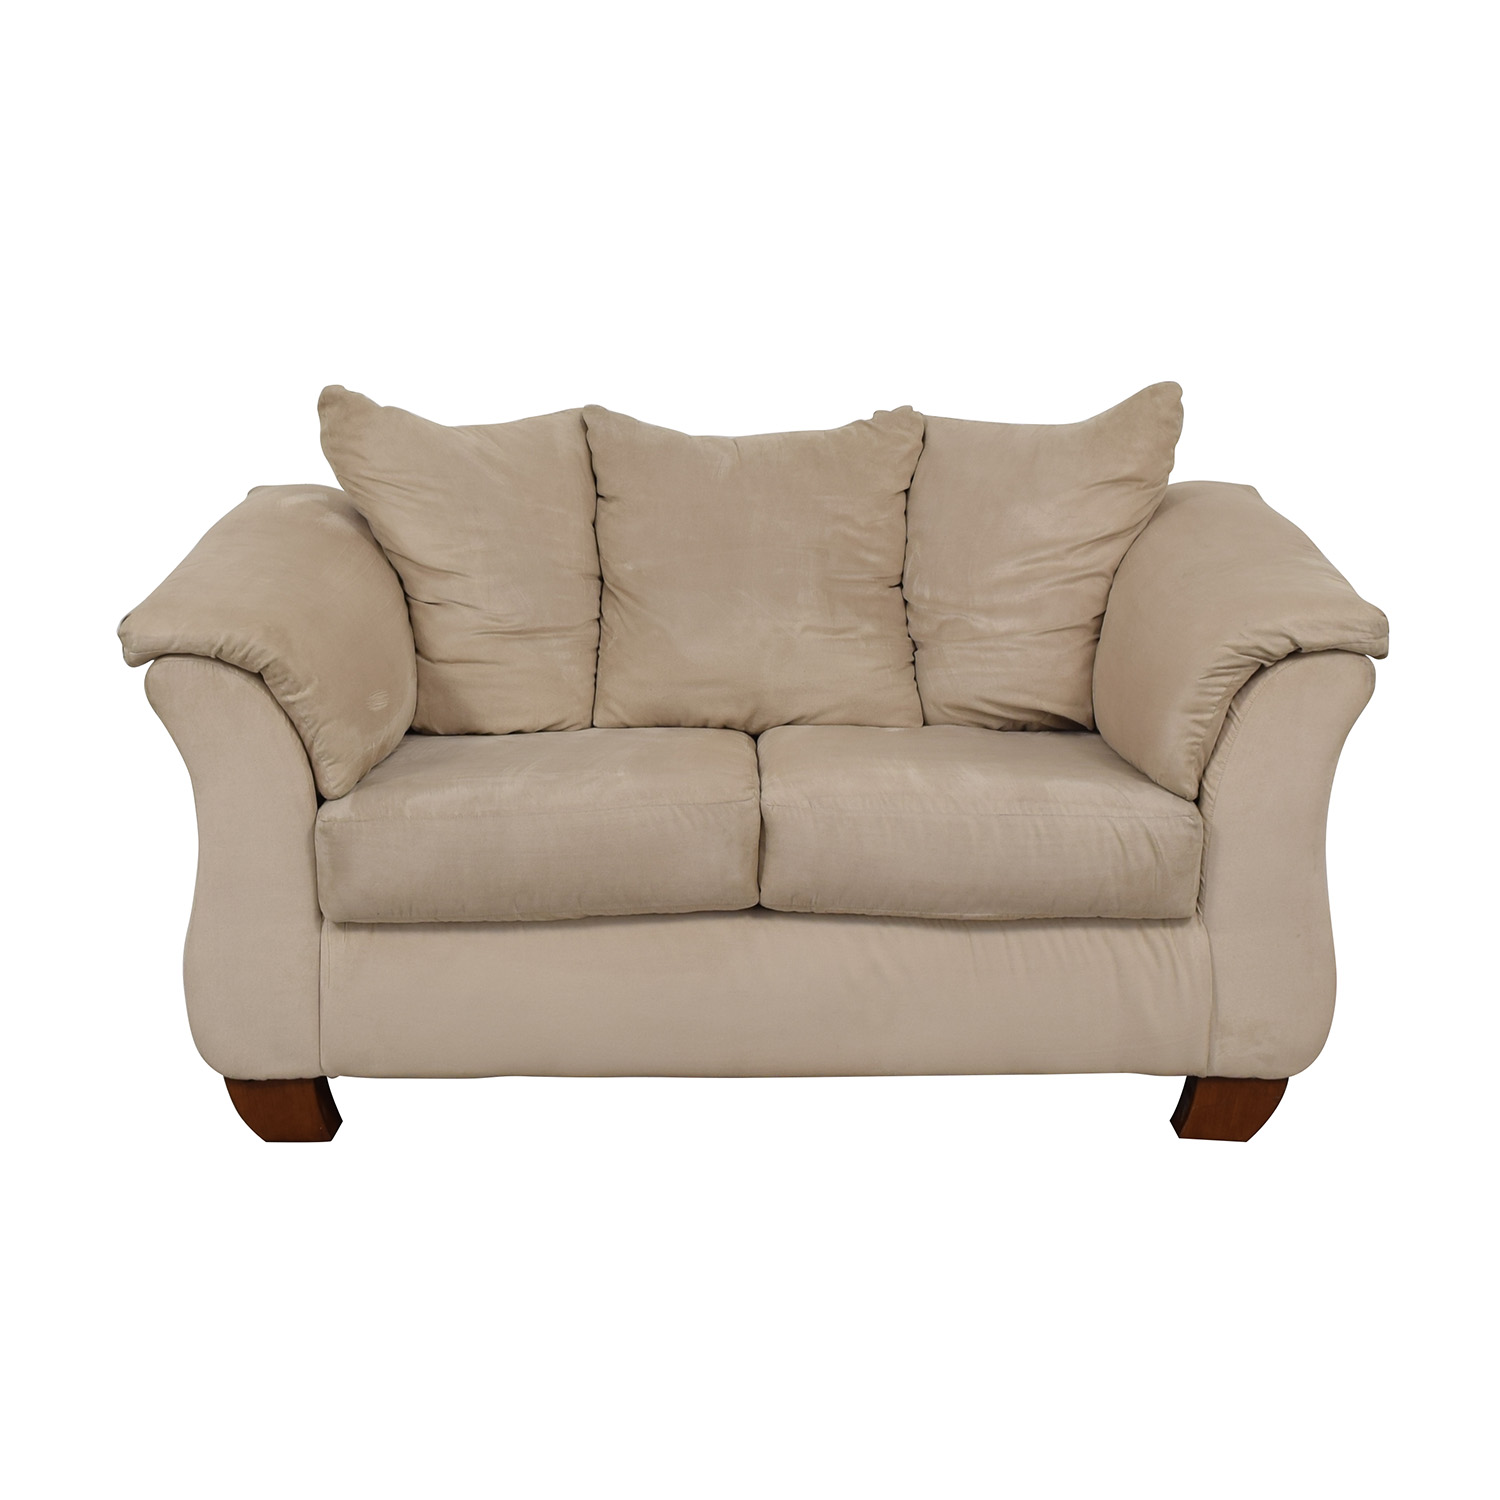 shop Beige Suede Two-Cushion Couch